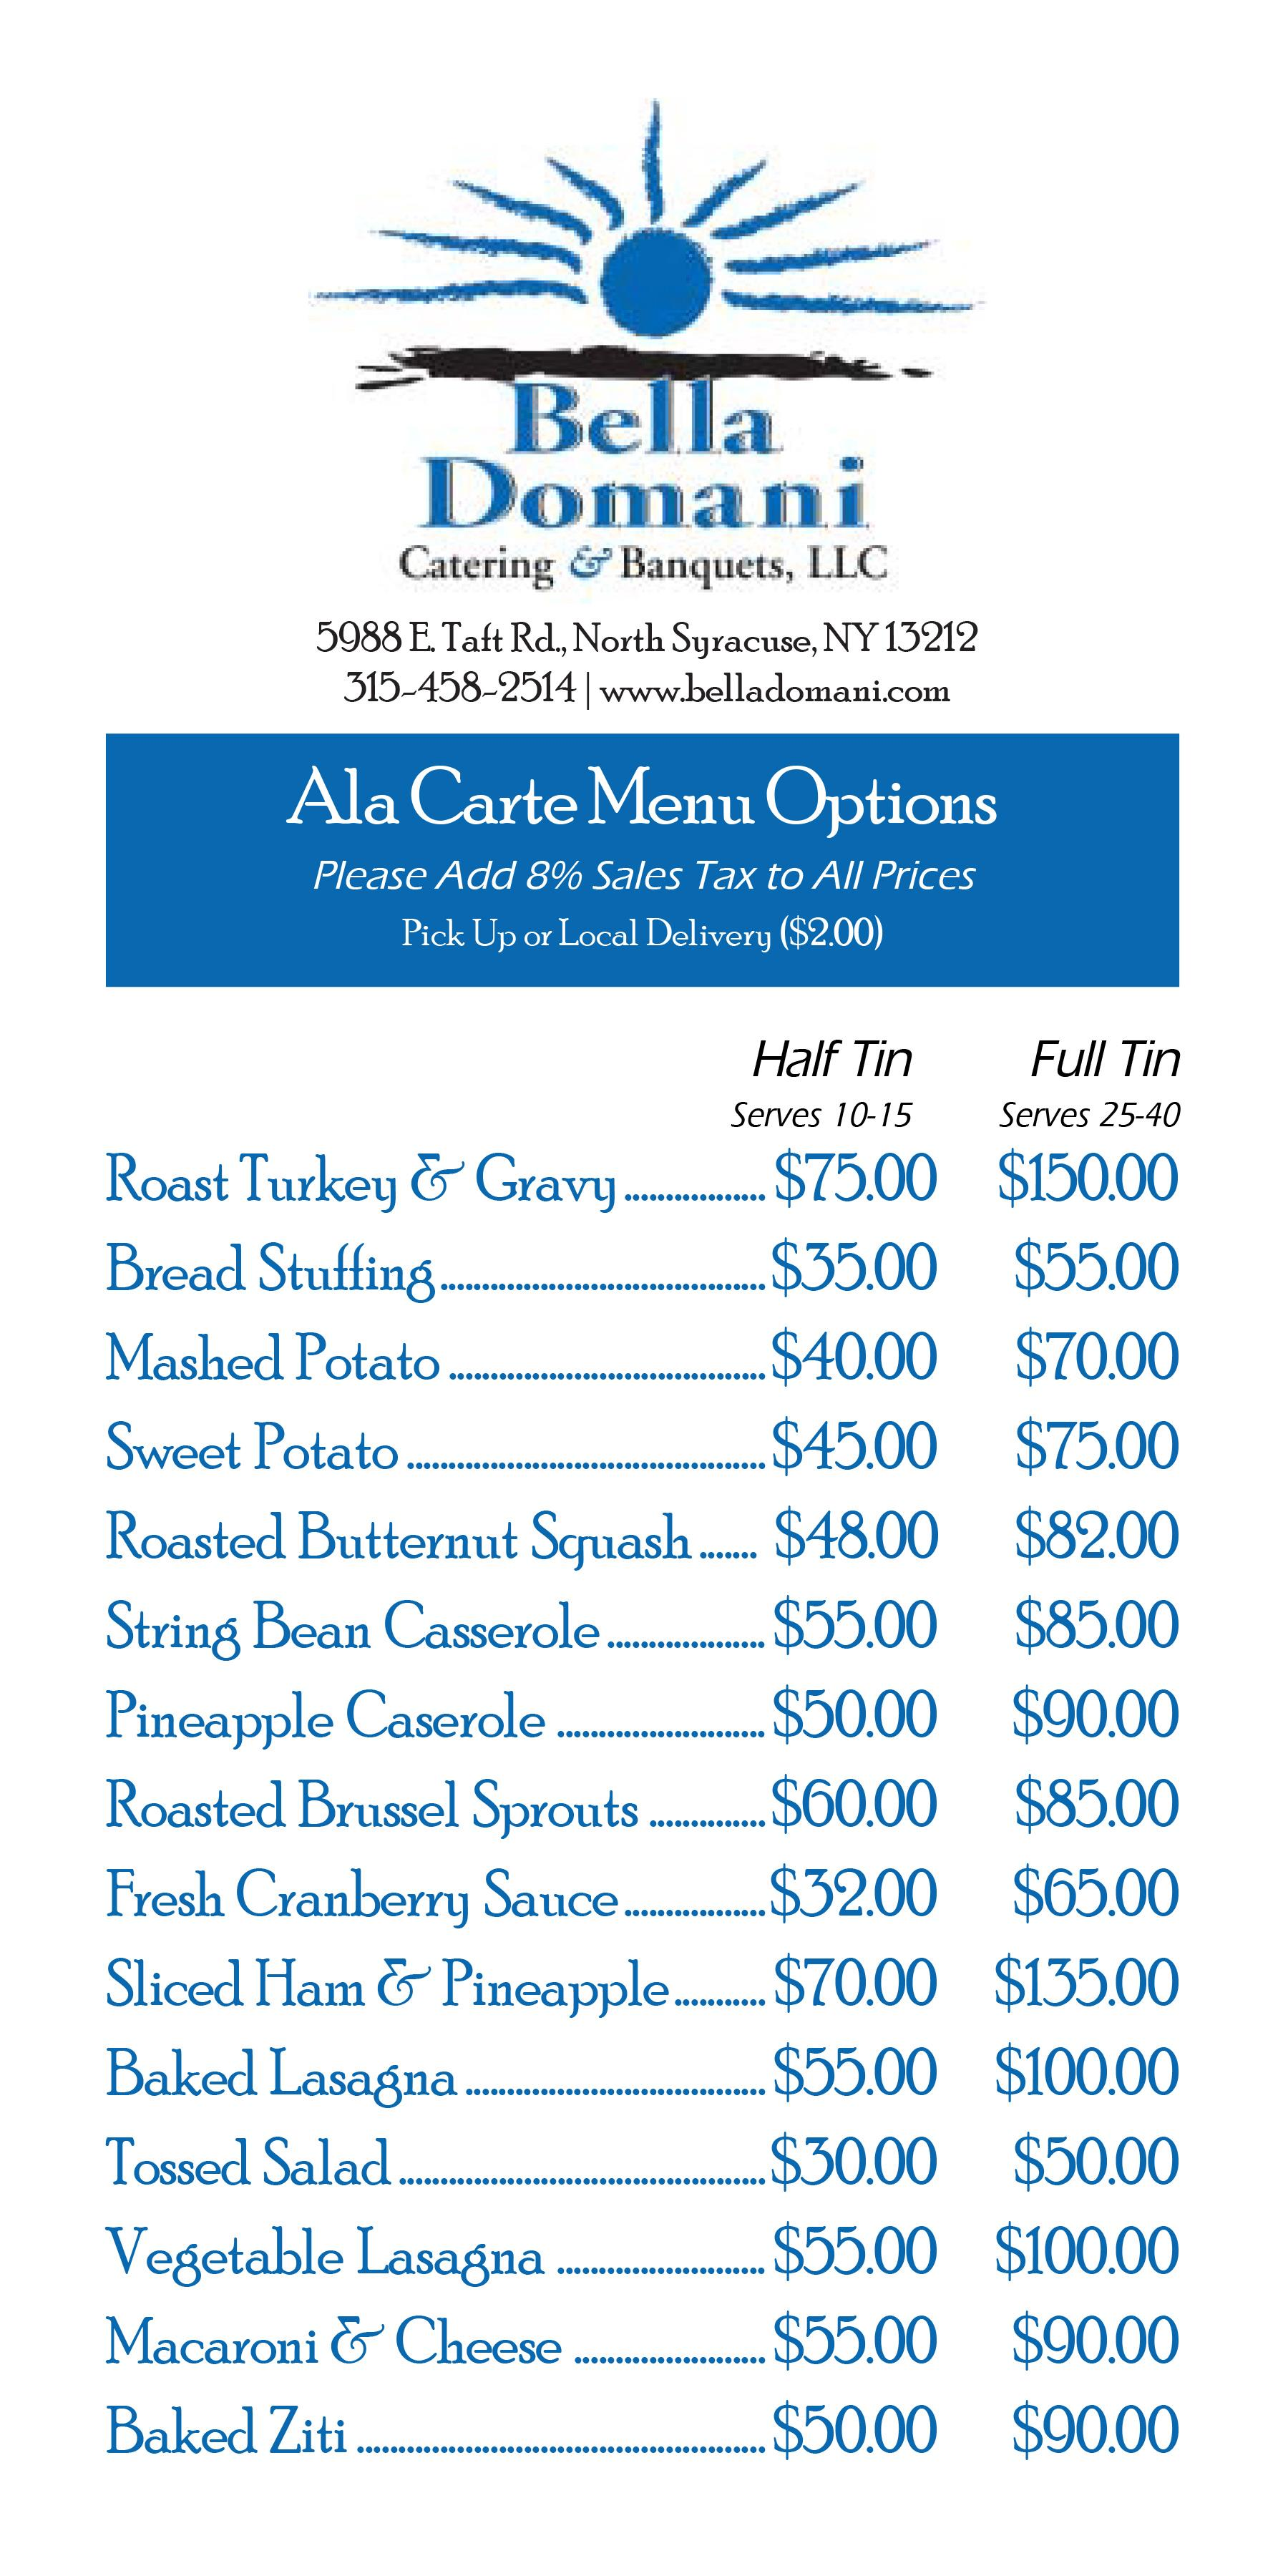 Ala Carte Menu Options. Please add 8% sales tax to all prices. Pick up or local delivery ($2.00). Half tin serves 10-15. Full tin serves 25-40. Roast Turkey & Gravy: $75/$150. Bread Stuffing: $35/$55. Mashed Potato: $40/$70. Sweet Potato: $45/$75. Roasted Butternut Squash: $48/$84. String Bean Casserole: $55/$85. Pineapple Casserole: $50/$90. Roasted Brussel Sprouts: $60/$85. Fresh Cranberry Sauce: $32/$65. Sliced Ham & Pineapple: $70/$135. Baked Lasagna: $55/$100. Tossed Salad: $30/$50. Vegetable Lasagna: $55/$100. Macaroni & Cheese: $55/$90. Baked Ziti: $50/$90